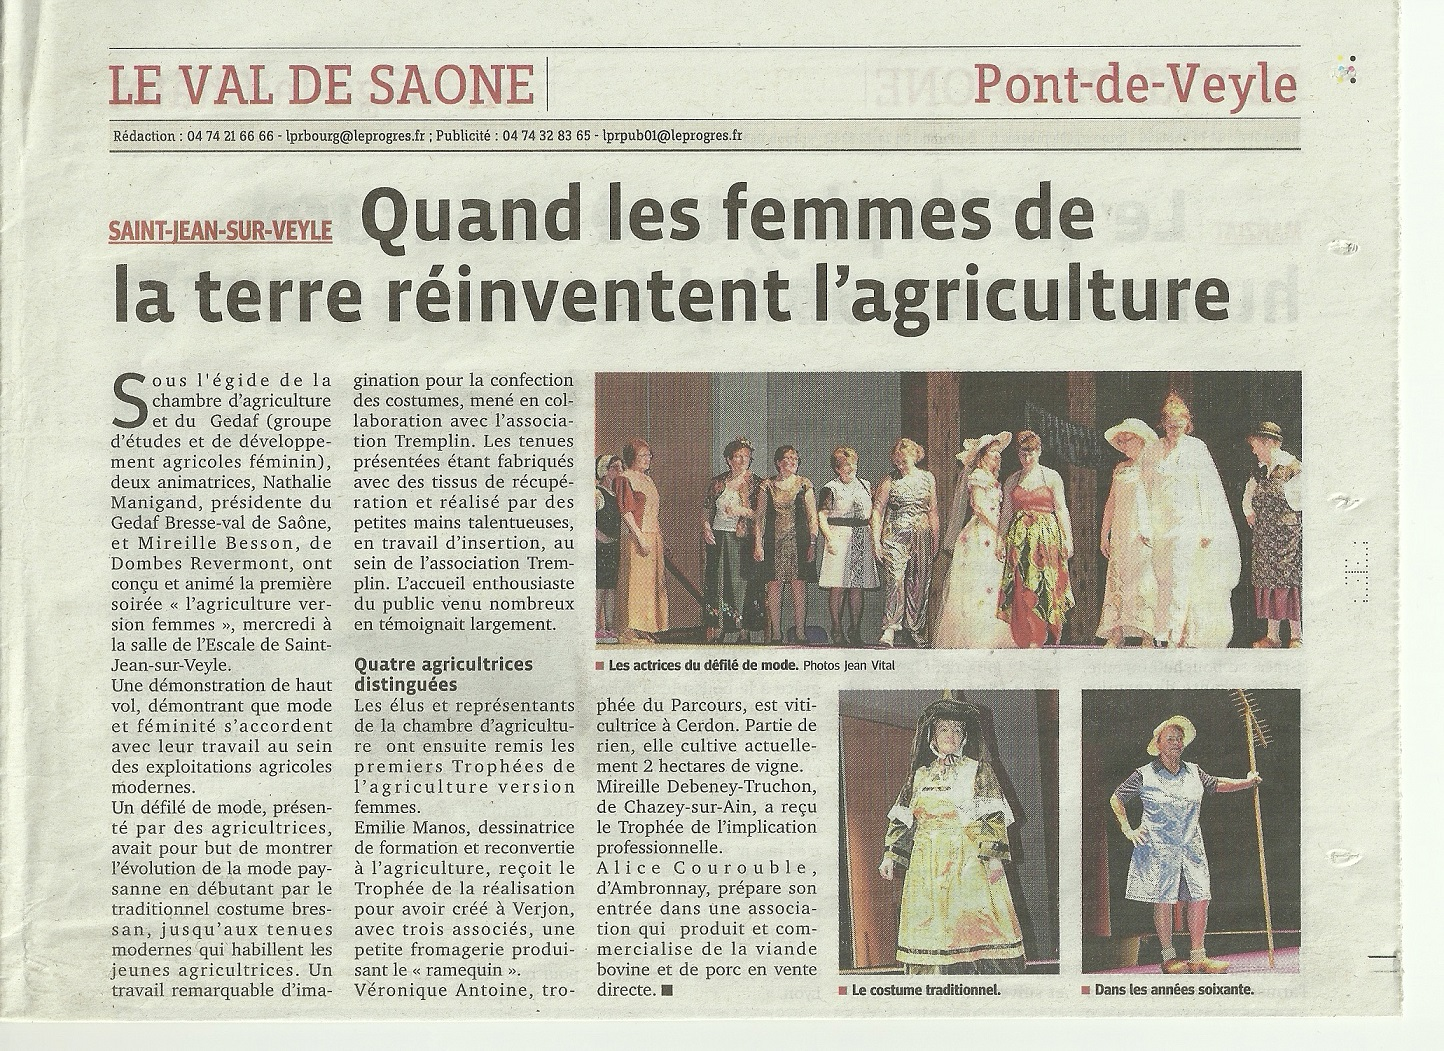 Rencontres femmes agricultrices